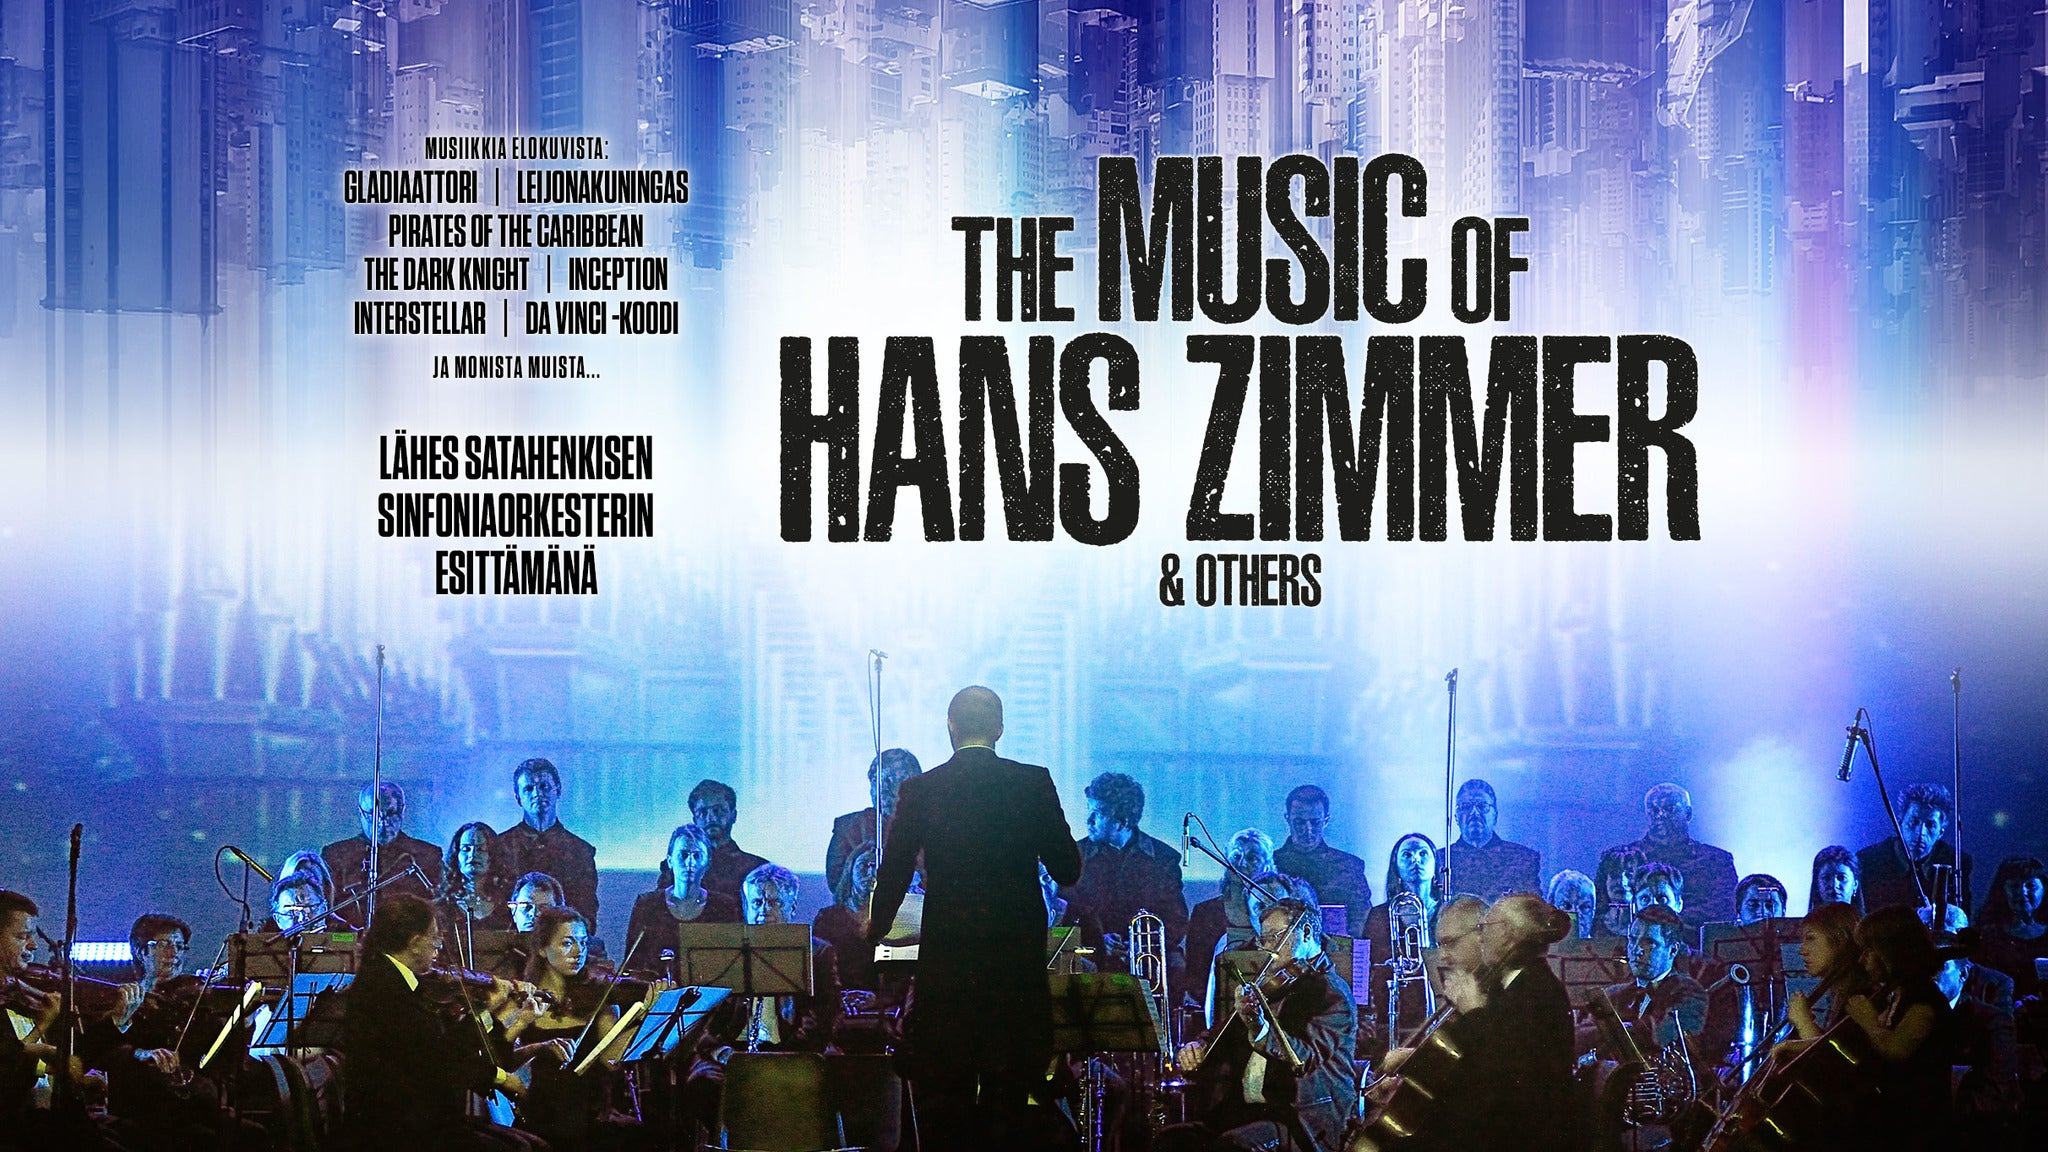 THE MUSIC OF HANS ZIMMER & OTHERS – A CELEBRATION OF FILM MUSIC